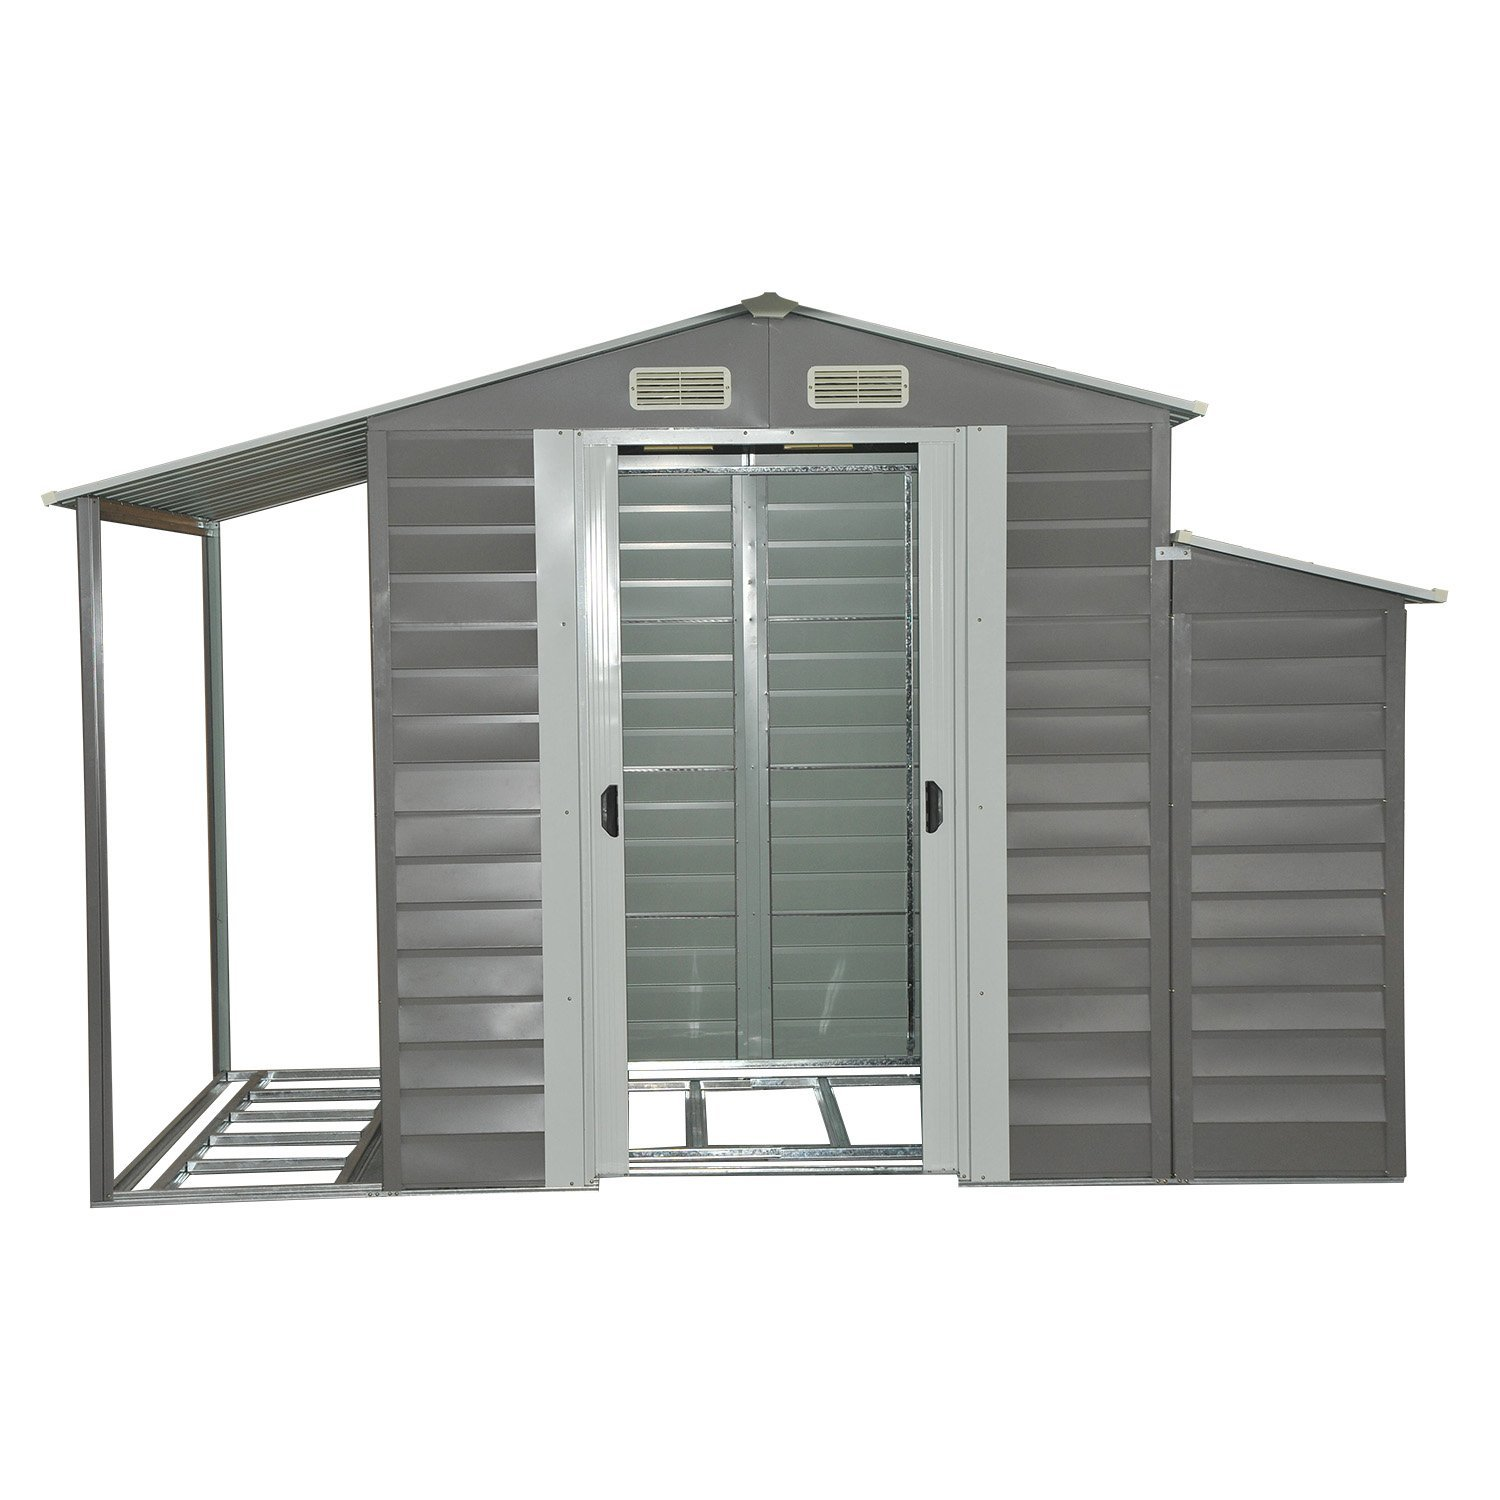 Outsunny 10' x 5' Metal Outdoor Garden Storage Shed with Firewood and Side Storage in Gray/White